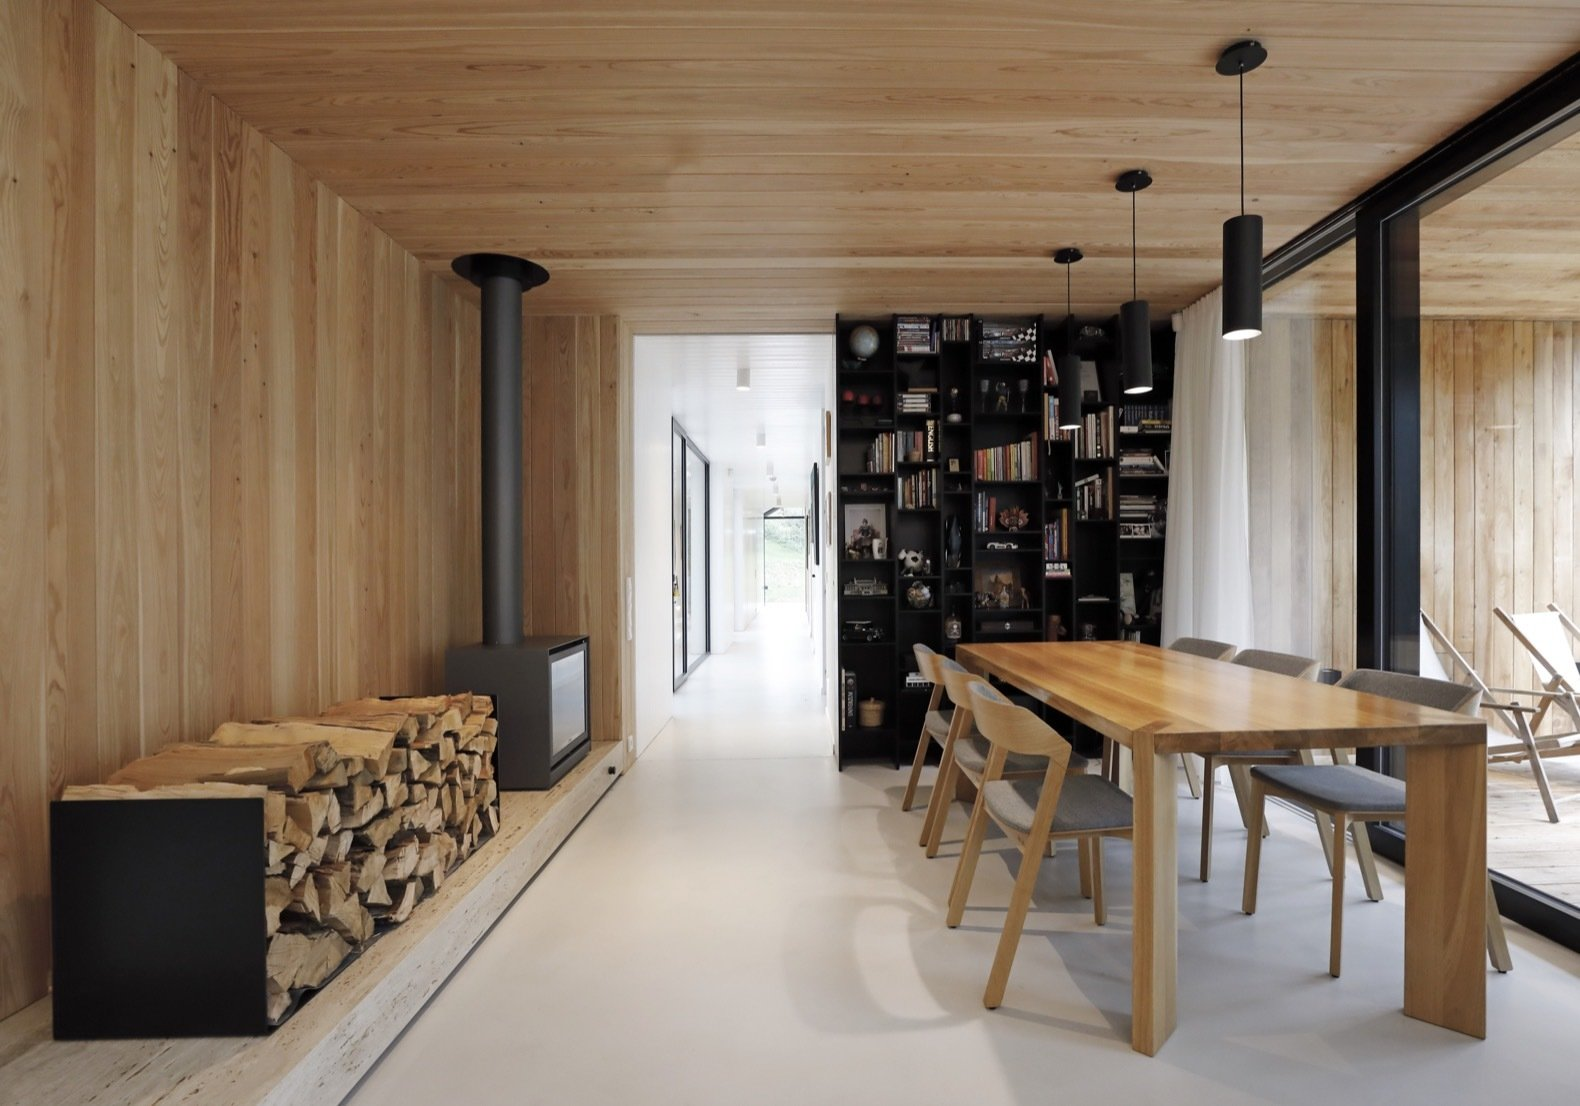 Dining, Shelves, Chair, Pendant, Wood Burning, and Table A wood-burning stove anchors one side of the dining area that connects to the sheltered outdoor terrace.    Dining Chair Shelves Wood Burning Photos from This Minimalist Bungalow Will Change Color Over Time